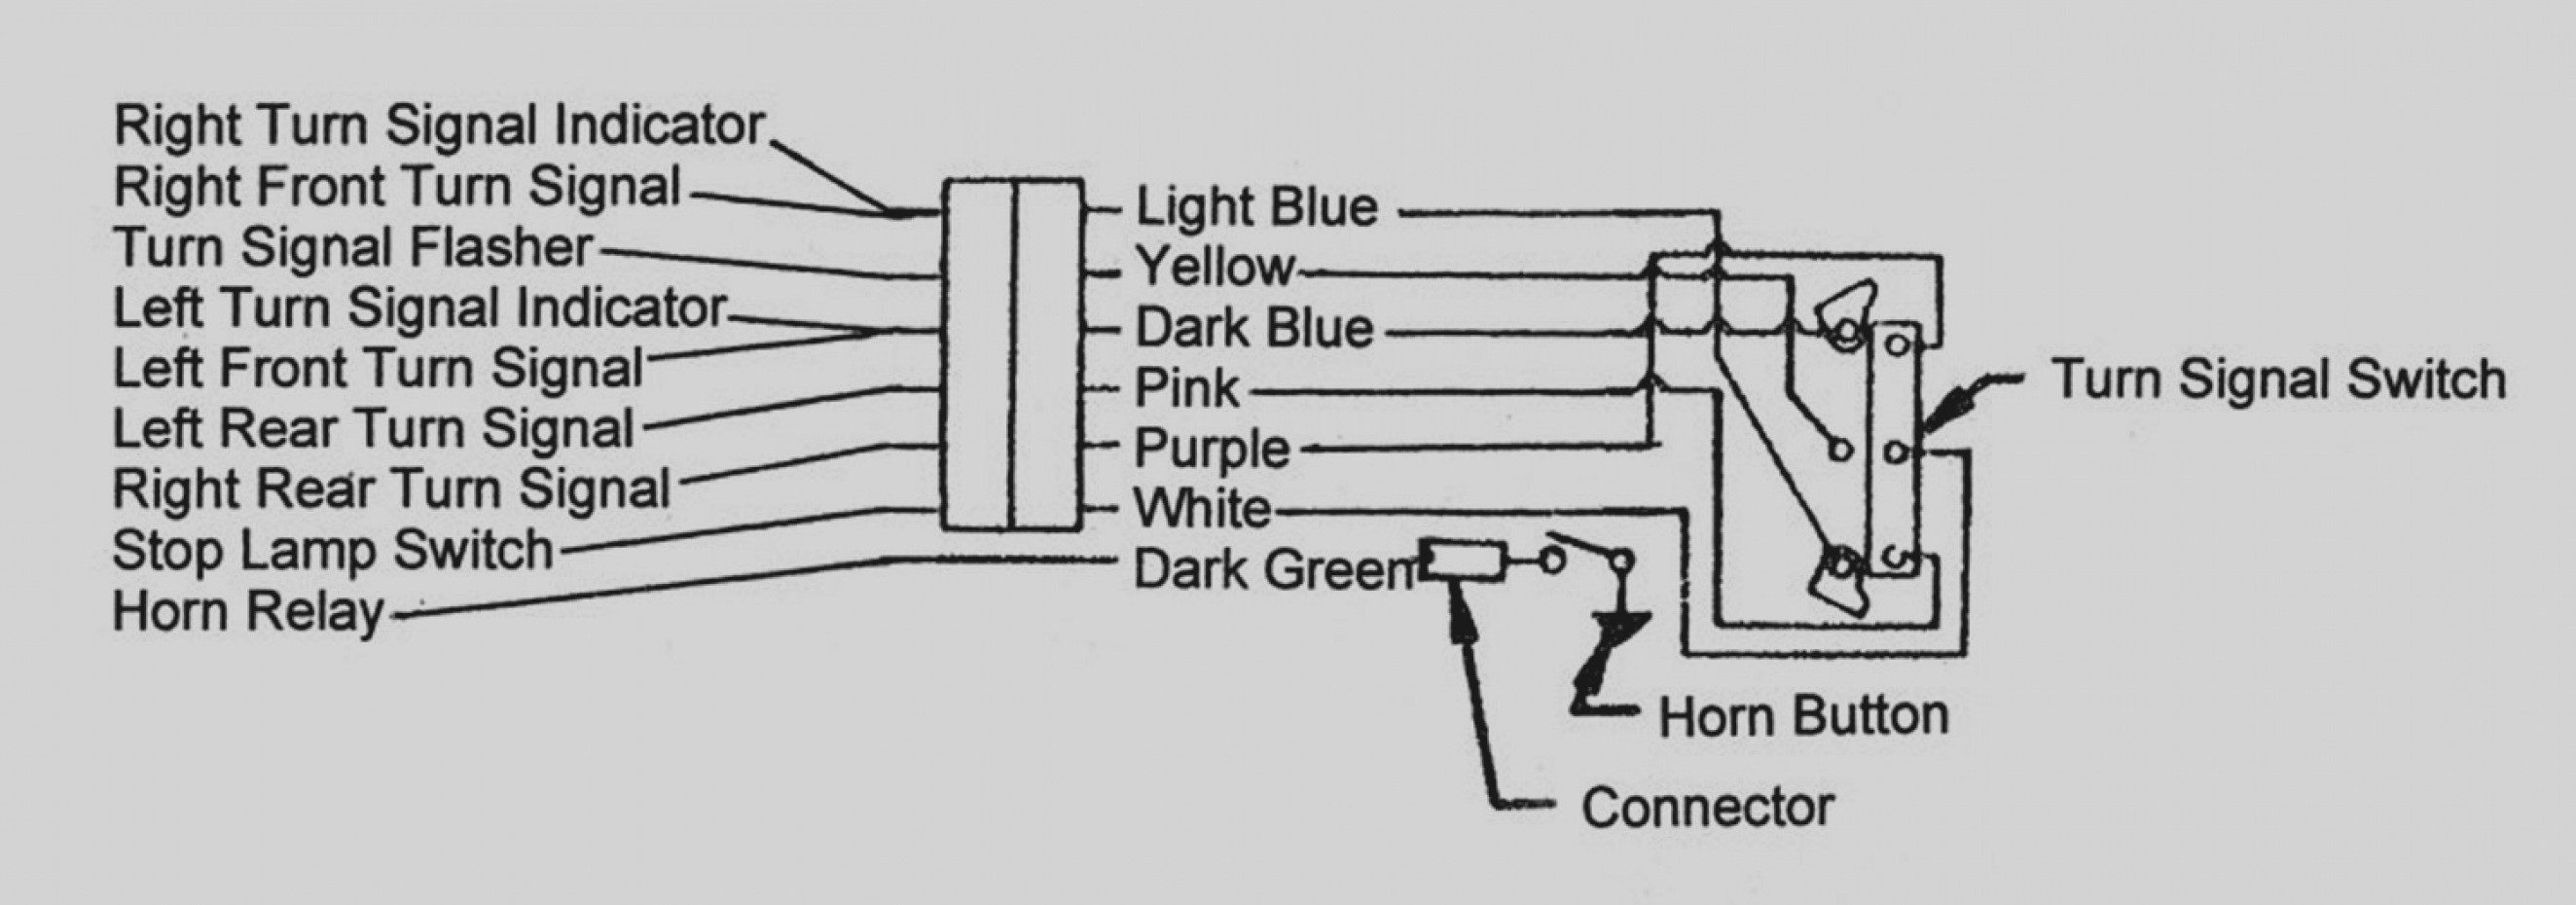 Gm Turn Signal Switch Wiring - wiring diagram electron-engine -  electron-engine.eugeniovazzano.it | Turn Signal Switch Wiring Schematics |  | Eugenio Vazzano